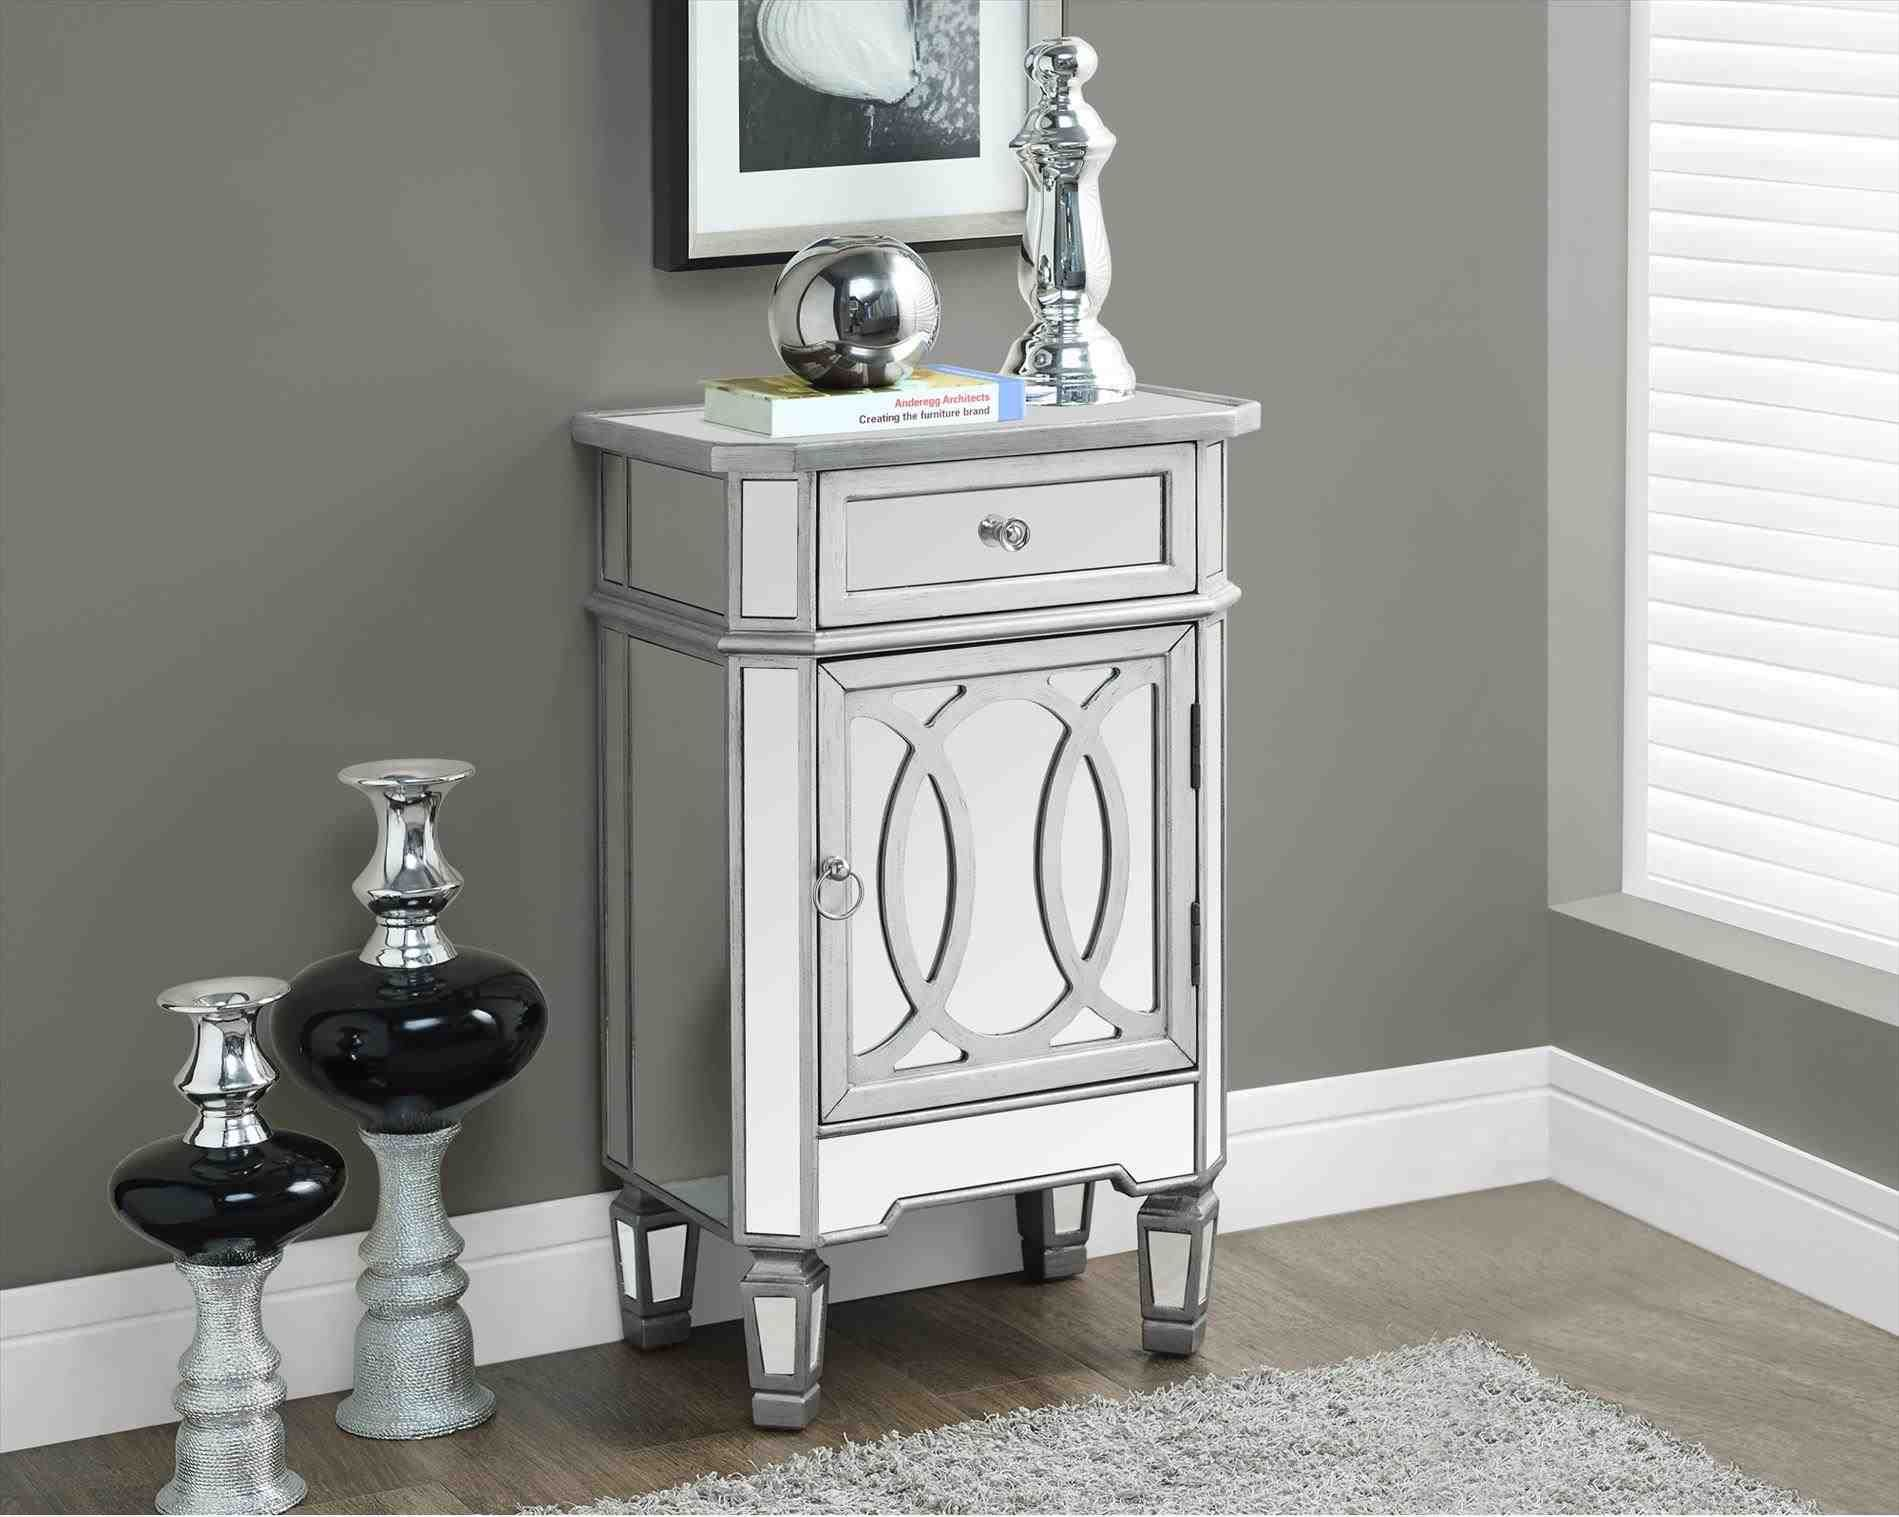 small accent table decor home design ideas new post decors metal with shelves bedside and dressing storage baskets college dorm room outdoor side aluminum patio chairs clearance